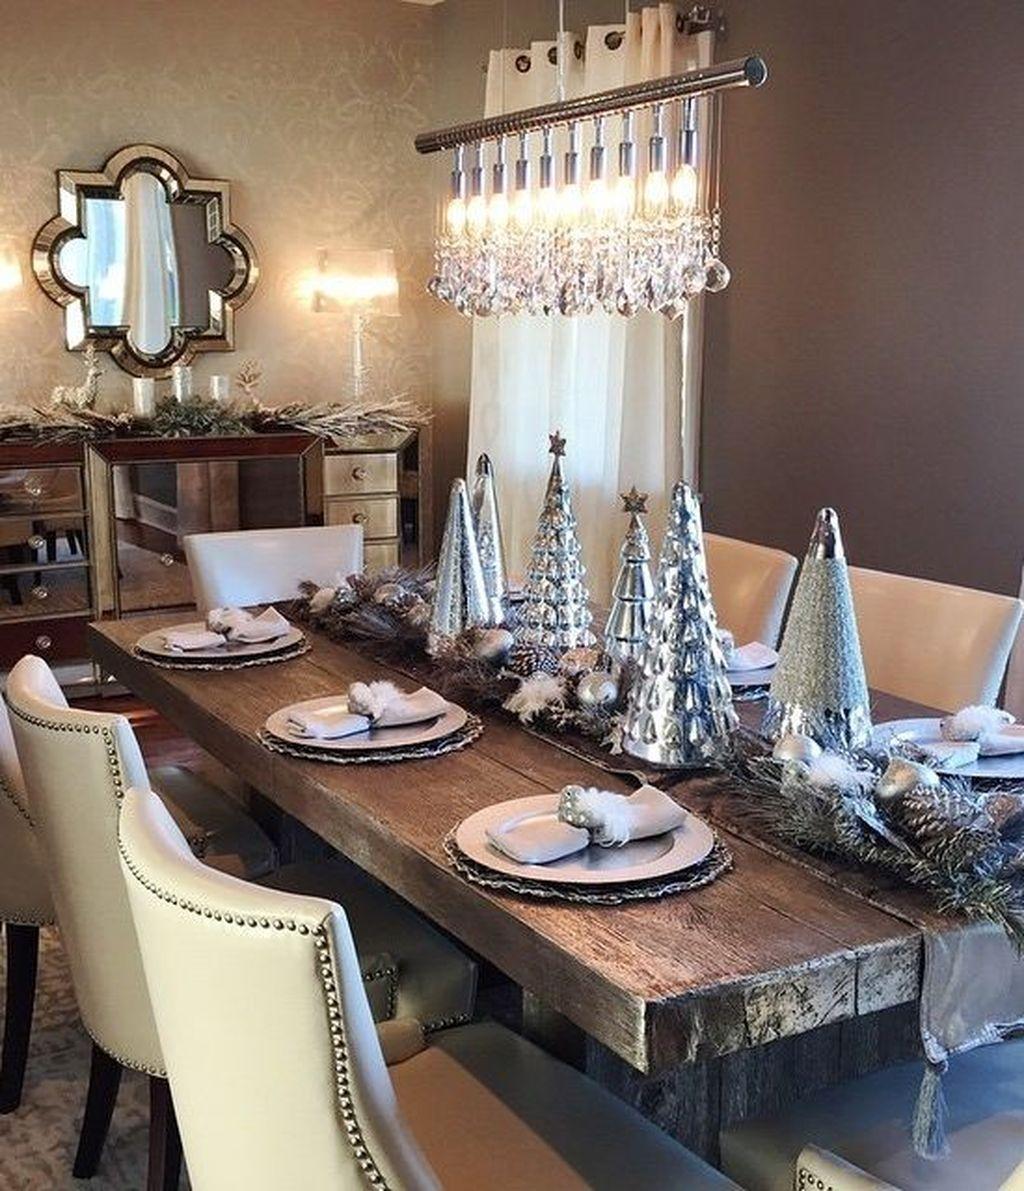 50 Beautiful Christmas Dining Room Decor Ideas Should You Apply This Winter Dining Room Table Decor Christmas Dining Table Decor Christmas Dining Table